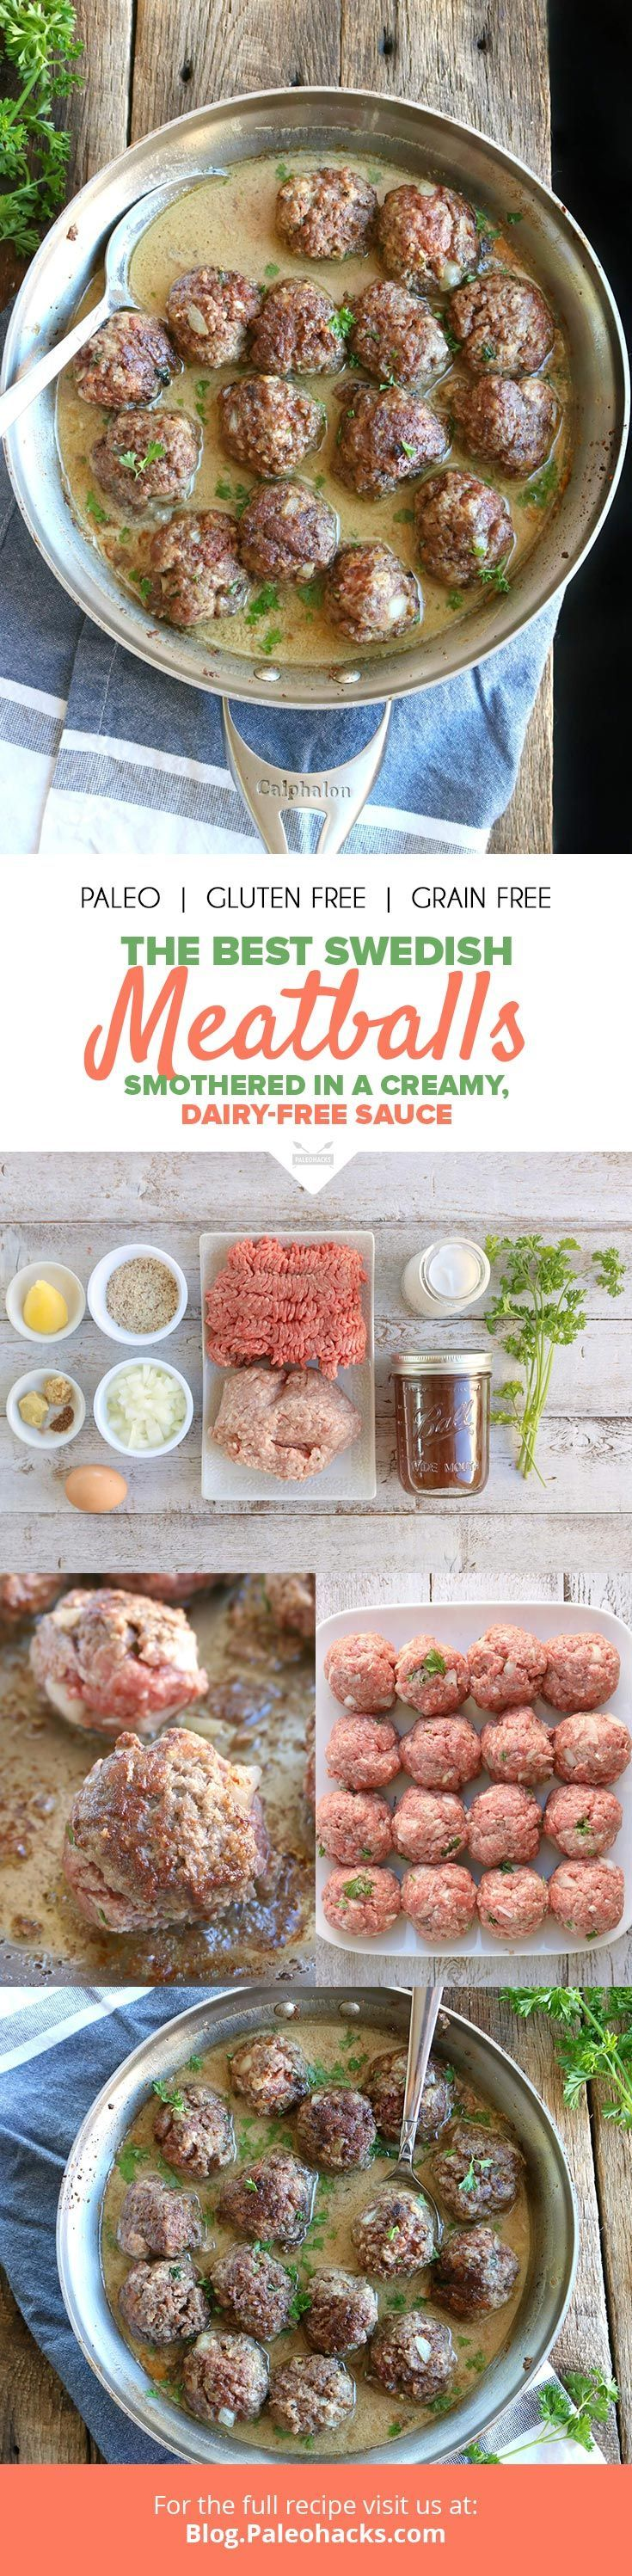 The best Swedish meatballs with non dairy sauce